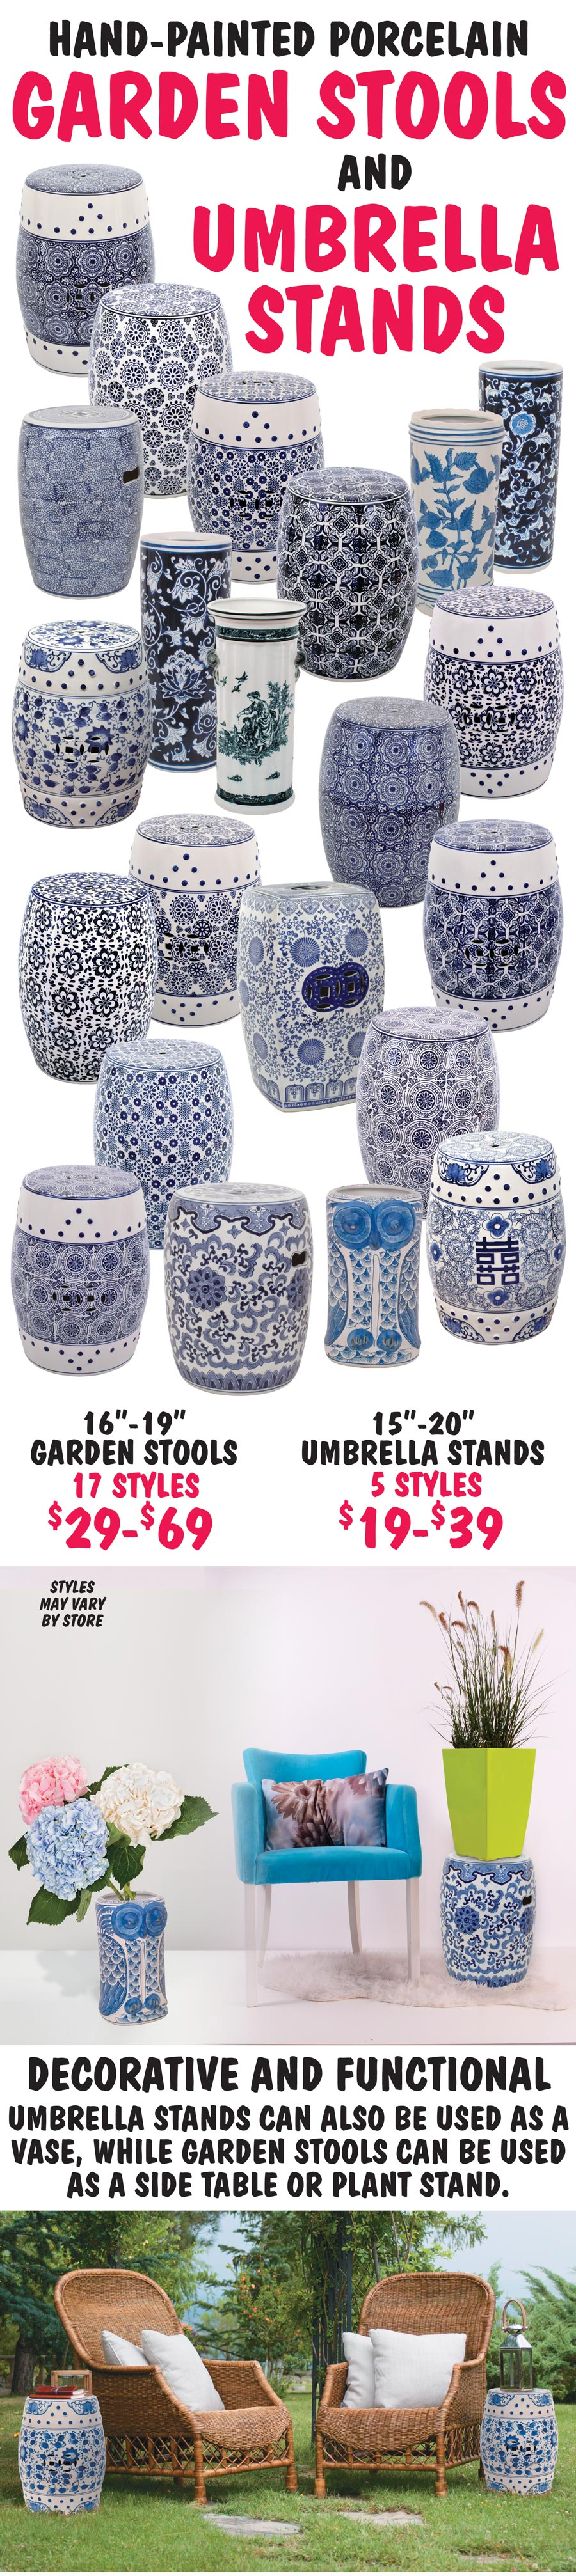 Hand-Painted Porcelain Garden Stools and Umbrella Stands - Variety of Styles. Garden Stools in 17 styles - $48 to $69. Umbrella Stands in 5 styles - $19 to $39. Click here to read our blog about the Blue and White Porcelain Renaissance.